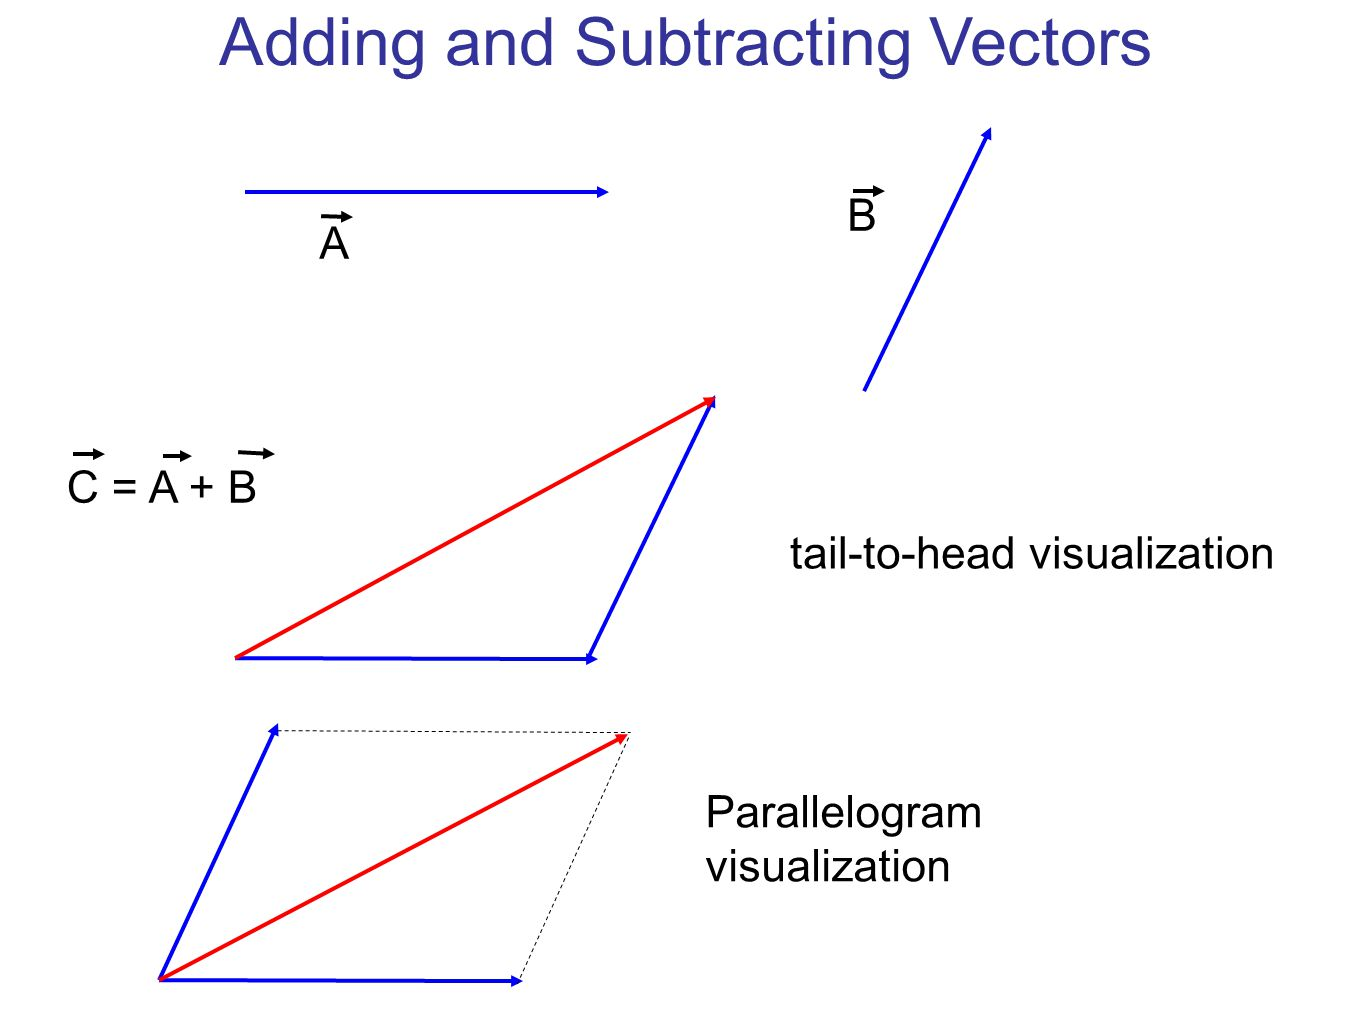 Adding and Subtracting Vectors